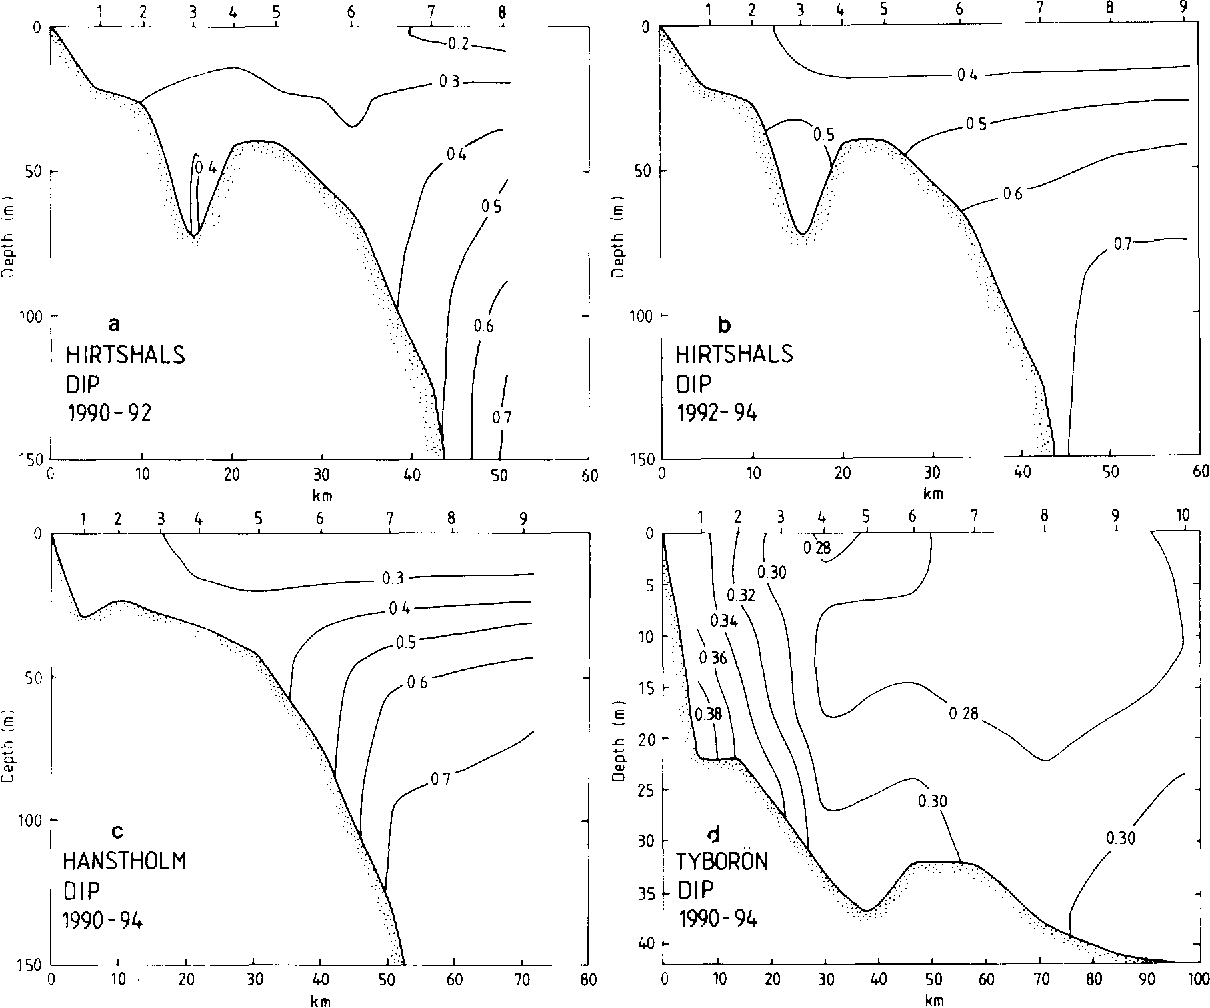 Fig. 6. Average DIP concentrations (mmol.m -3) at the cross-sections at Hirtshals (a, b; 20 transects), Hanstholm (c; 24 transects) and Tybor6n (d; 20 transects). Compare legend of Fig. 2.